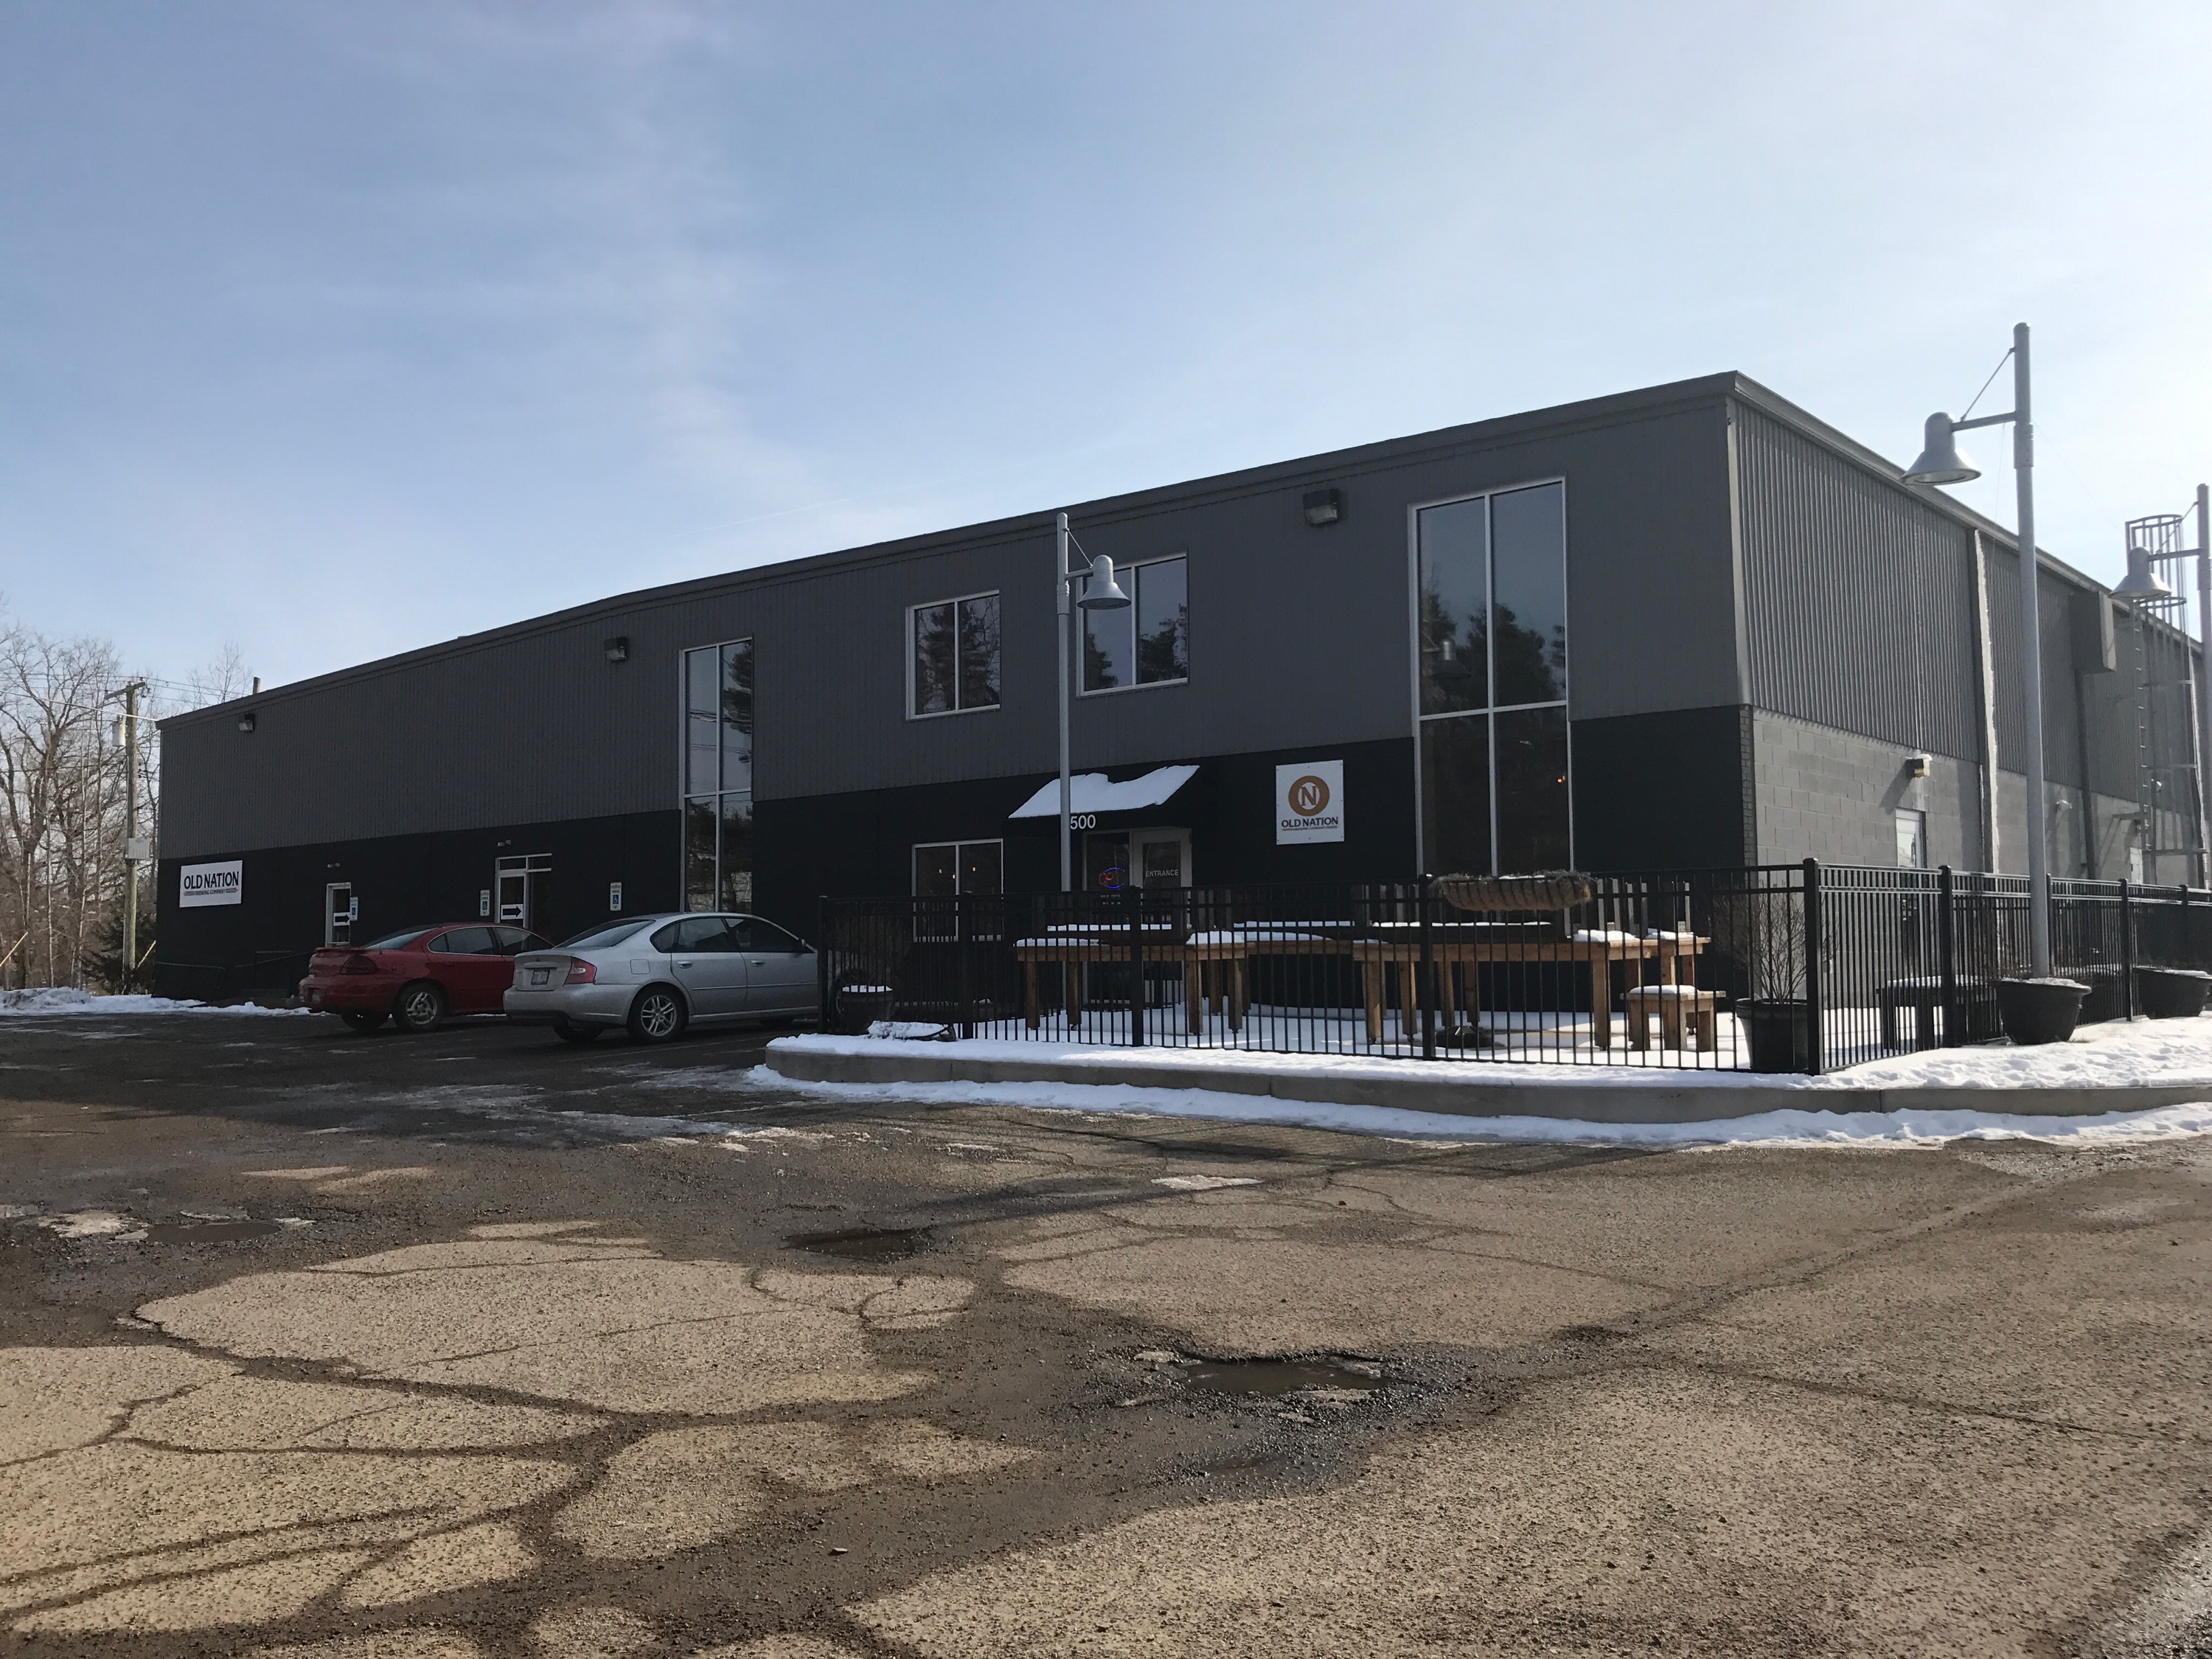 """Old Nation Brewing Company is located at 1500 W. Grand River, Williamston, MI, where the old Police Station and Habitat for Humanity used to be located at."""